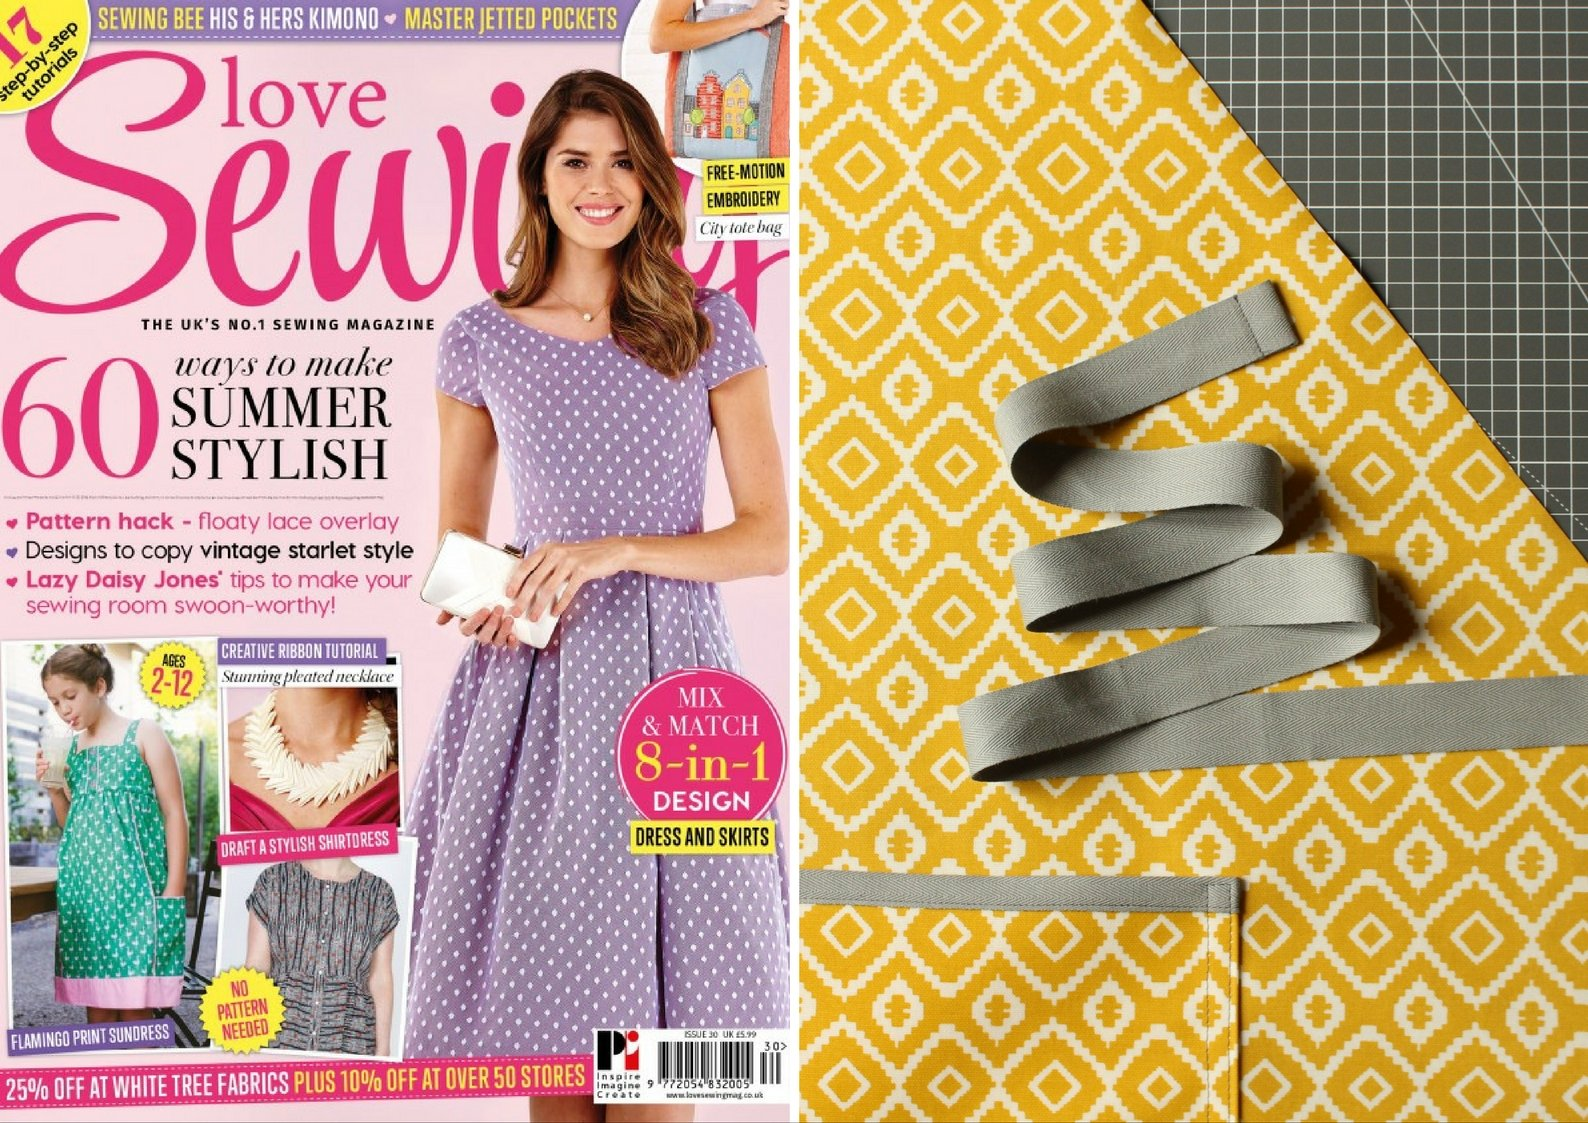 Oilcloth Apron featured in Love Sewing issue 30